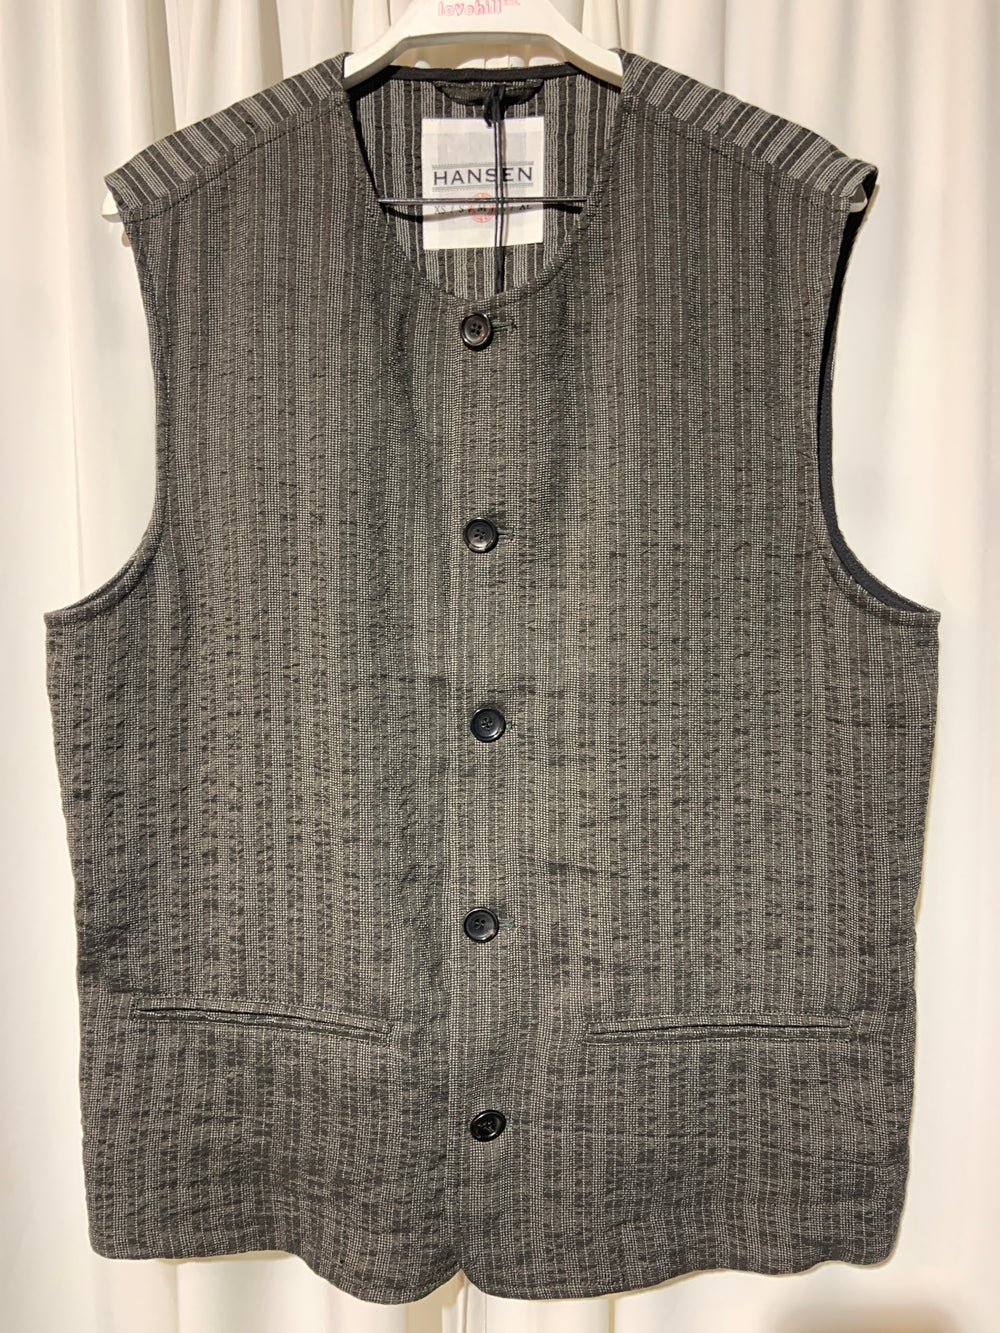 Image of HANSEN GARMENTS Waistcoat Ben taupe stripes